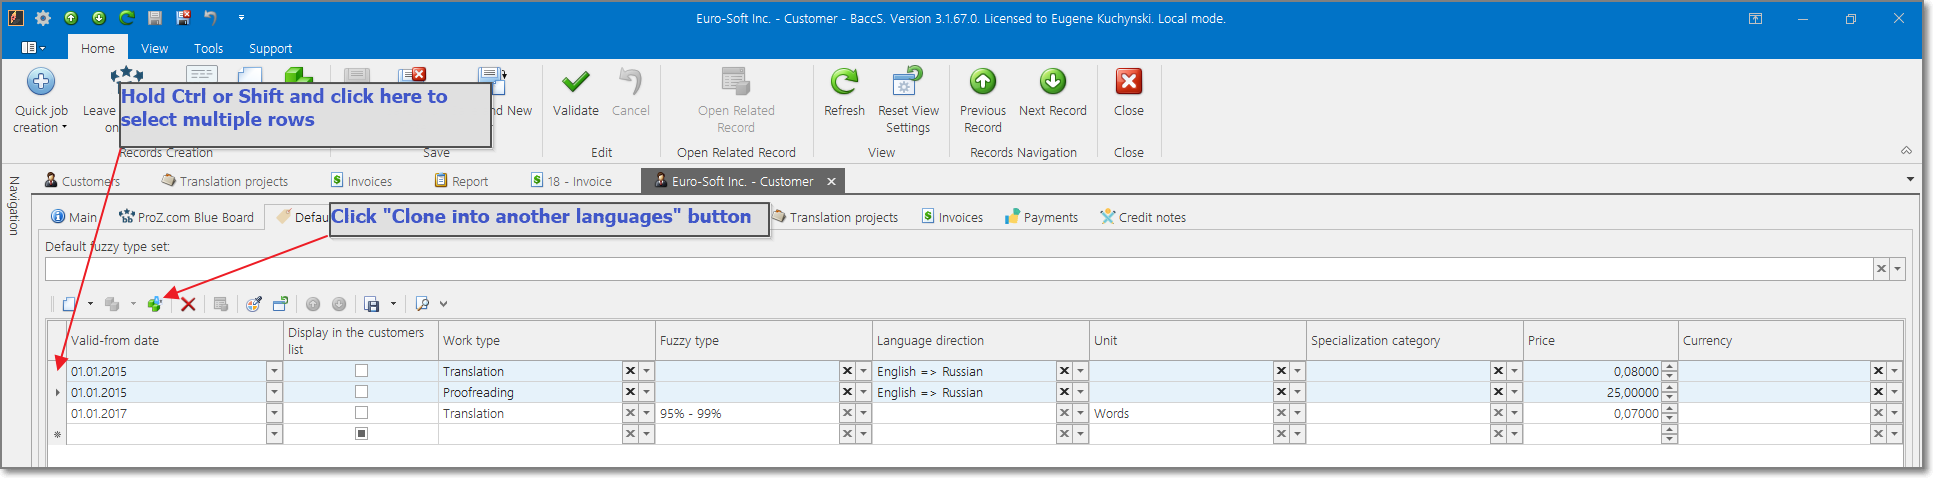 Effective translation project management by setting default price list for customers